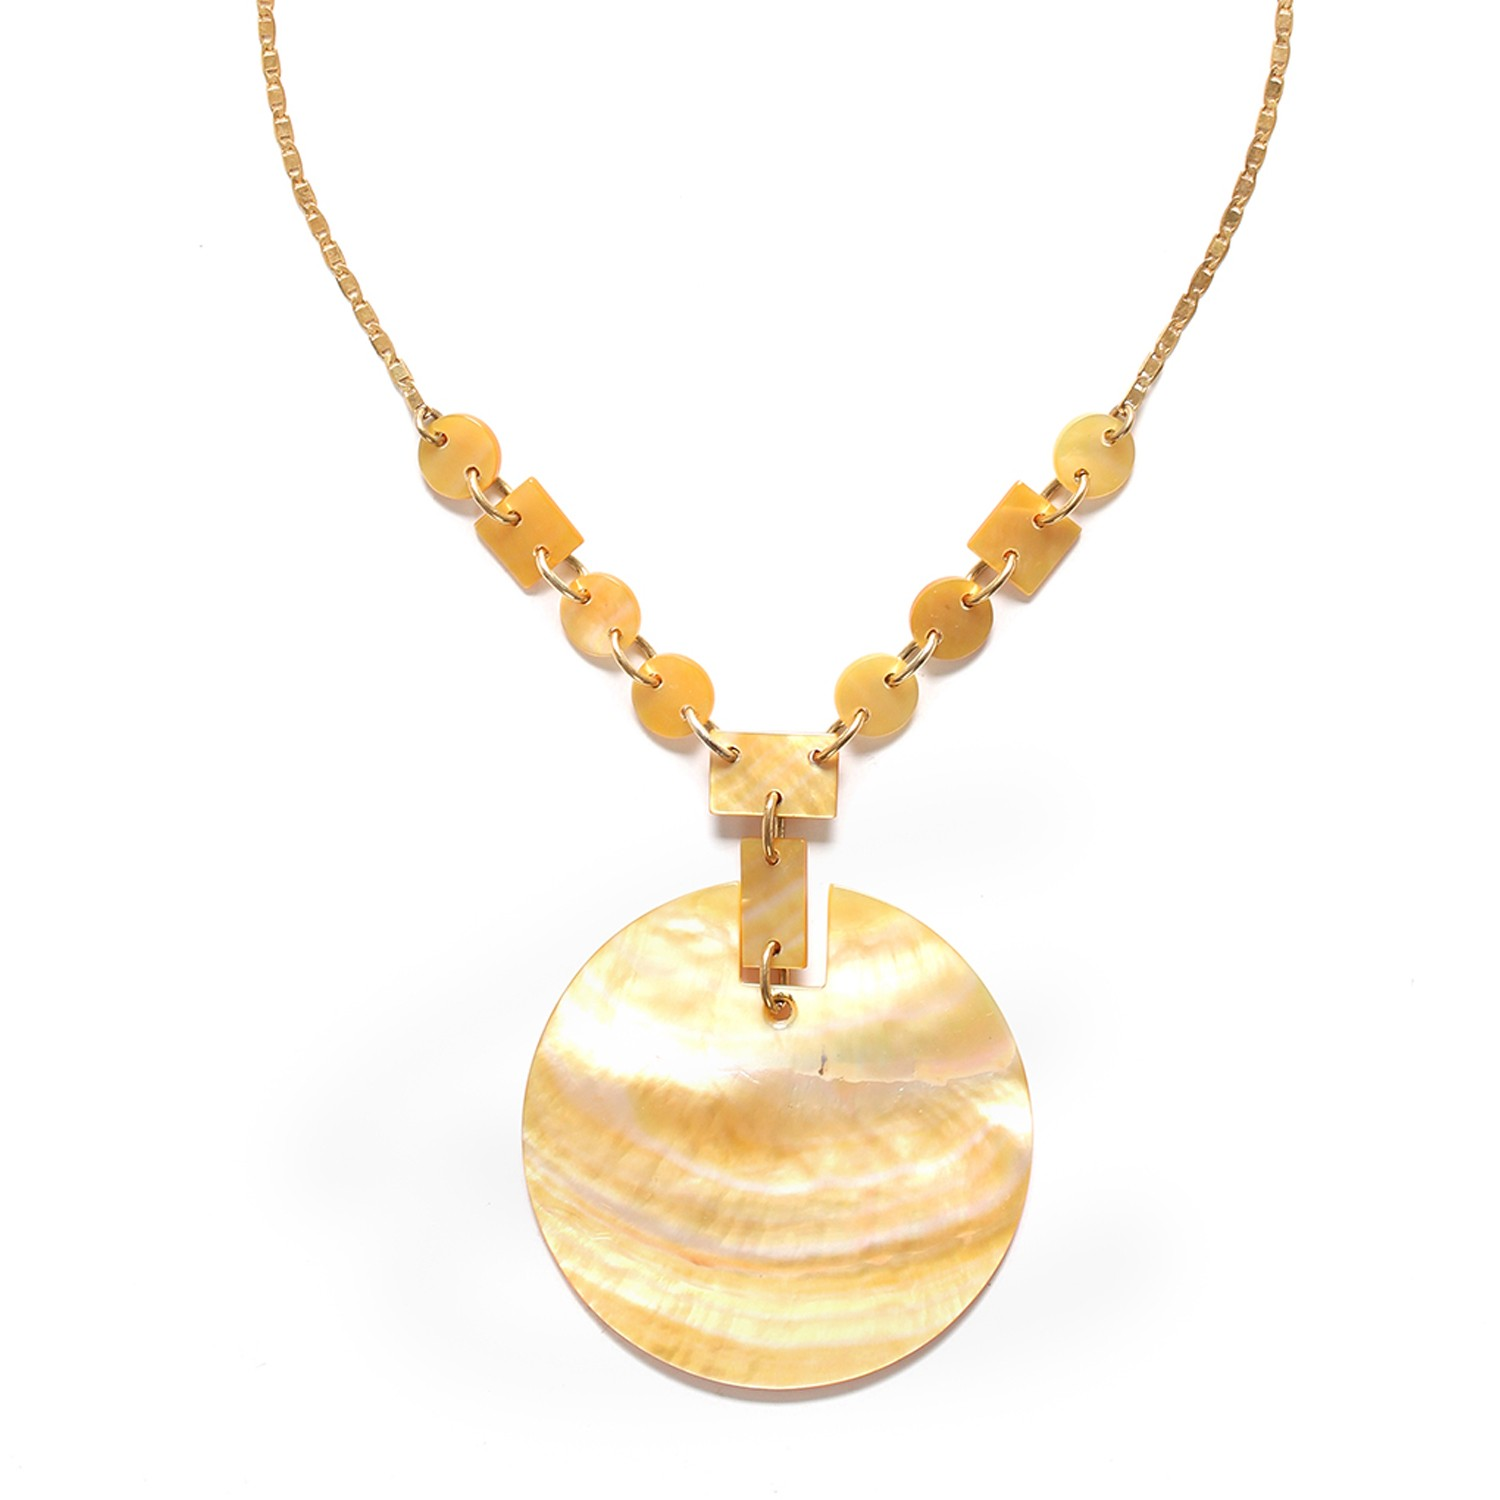 ORO round pendant necklace